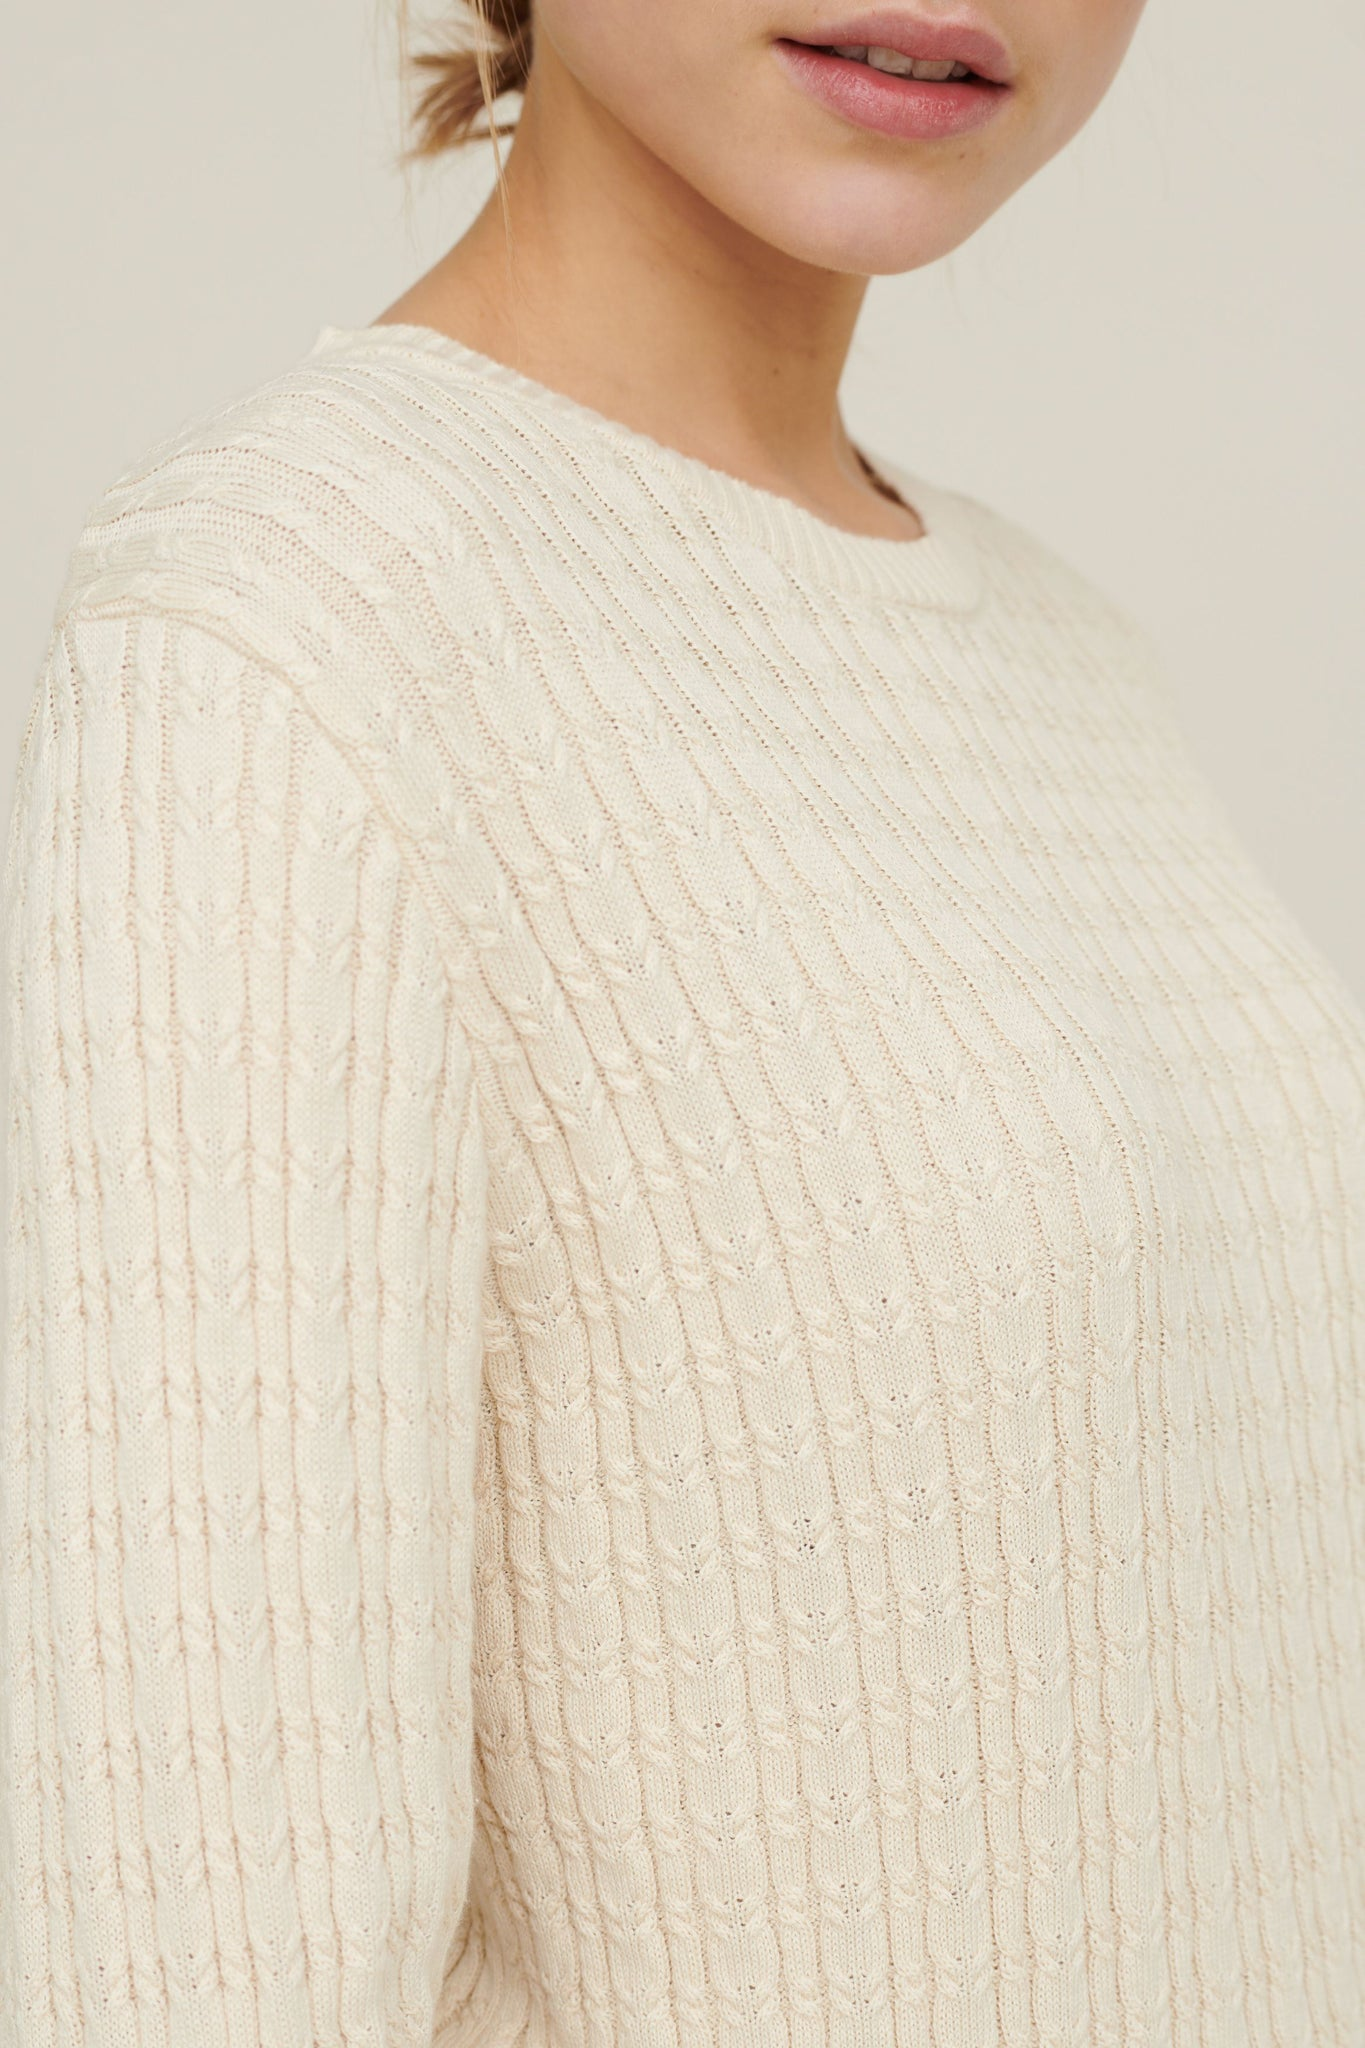 Basic Apparel // Aline sweater - Birch